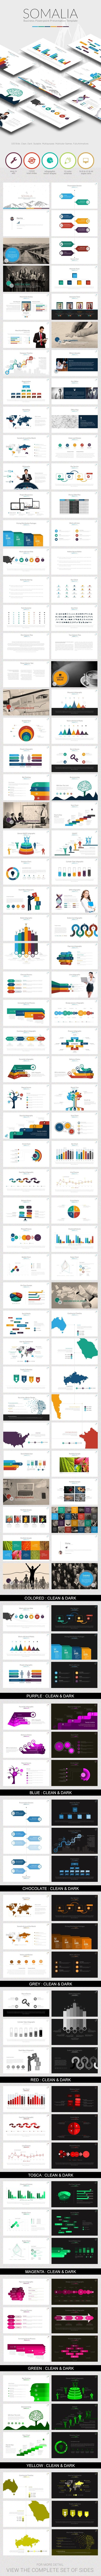 دانلود قالب graphicriver Somalia Powerpoint Template